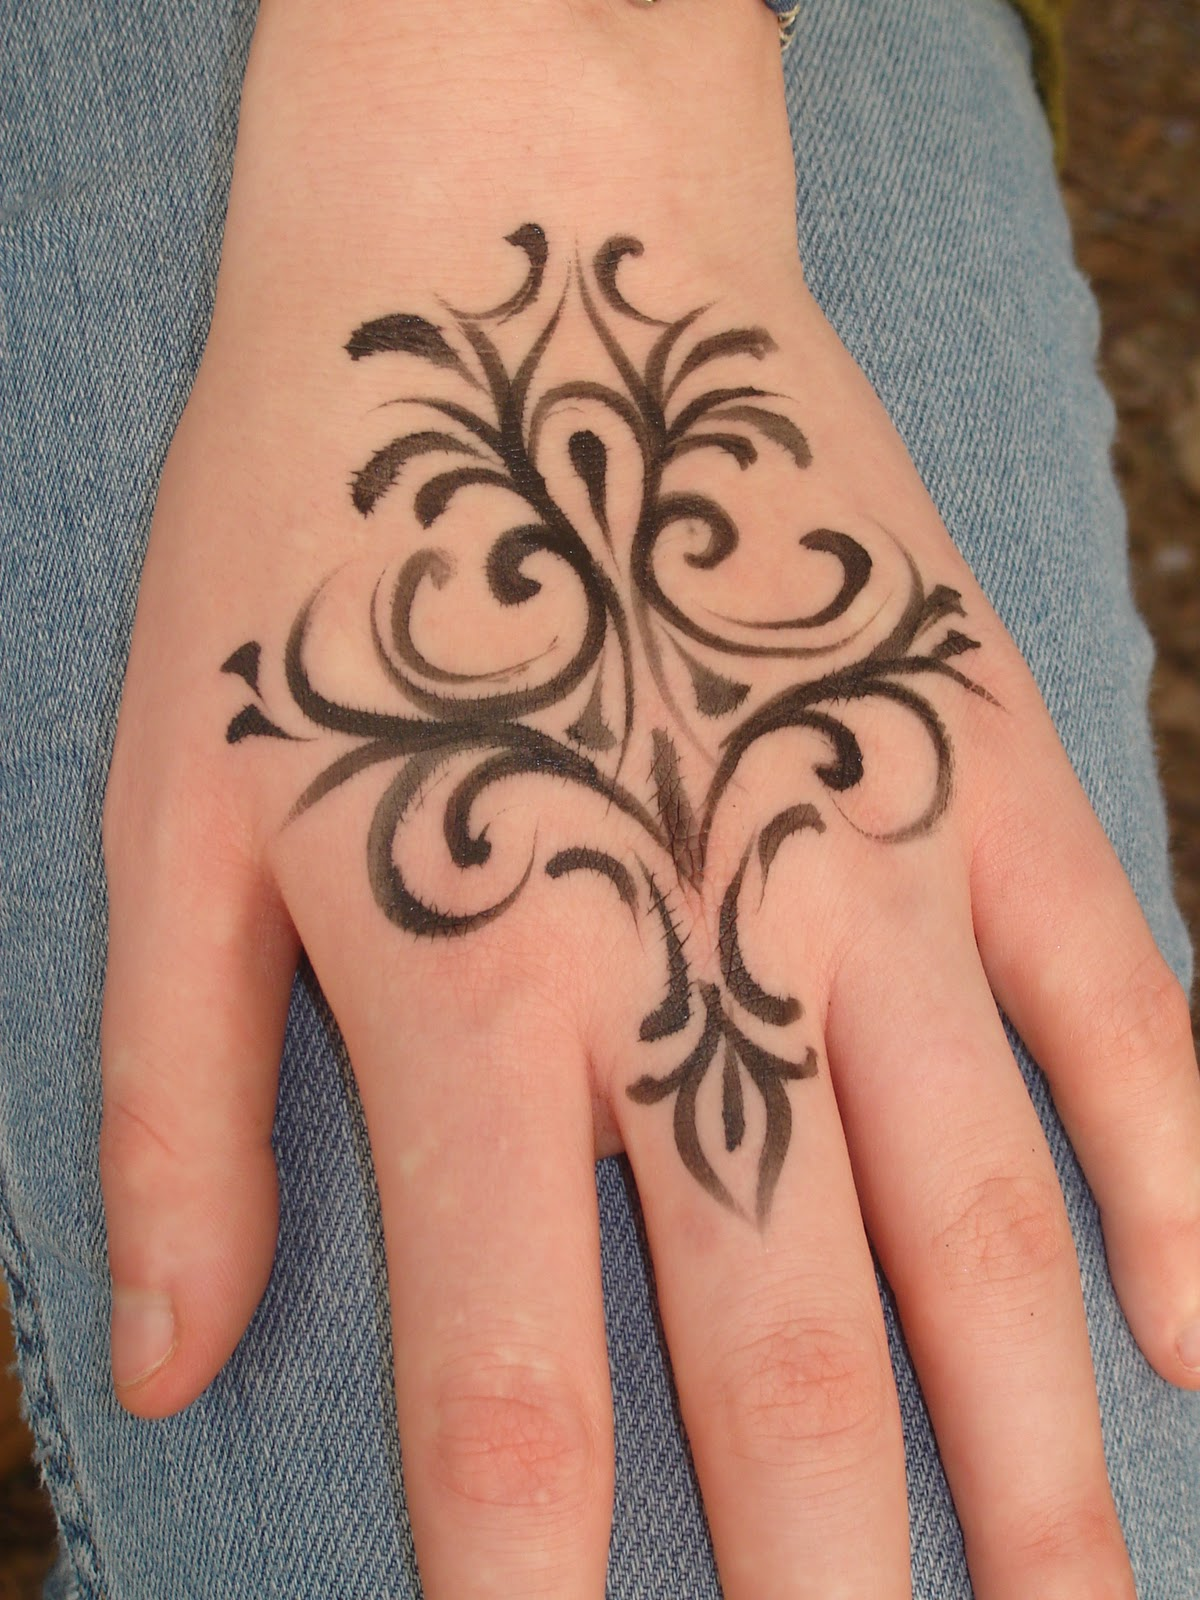 Simple Henna Tattoo Designs For Feet: Henna Tatoo Designs